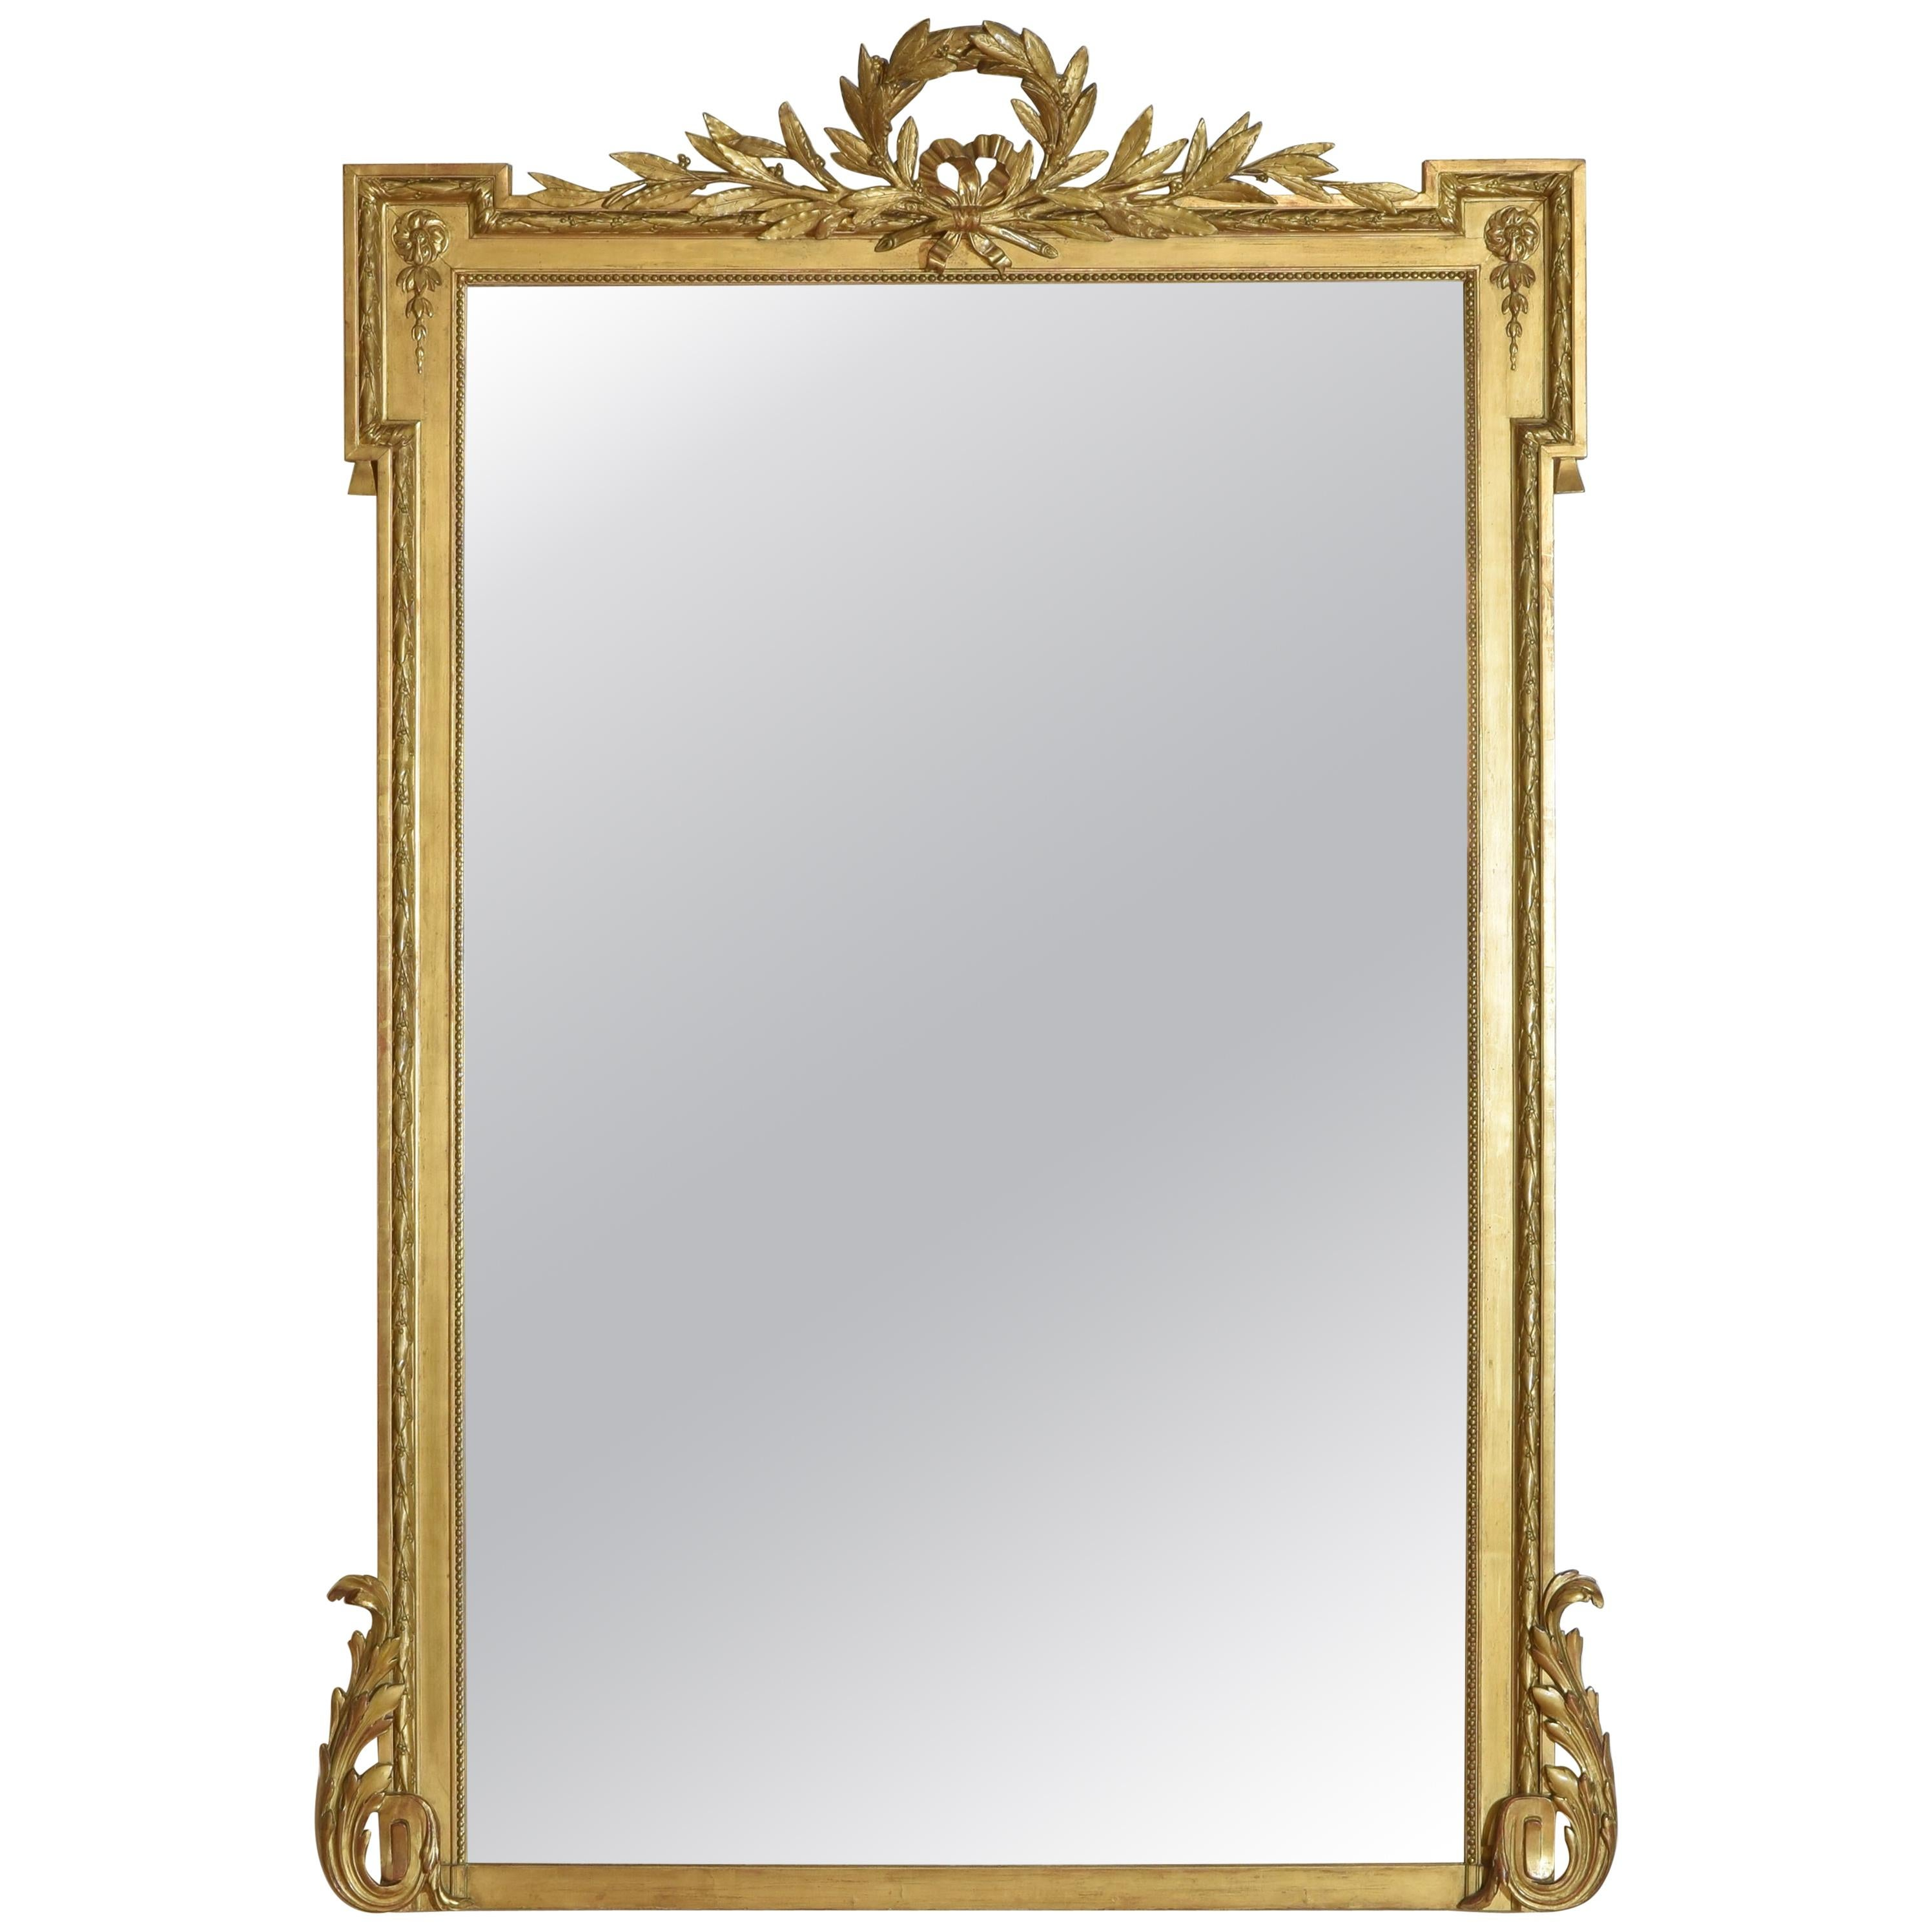 French Neoclassic Large Carved Giltwood and Gilt-Gesso Mirror, 3rdq 19th Cen.